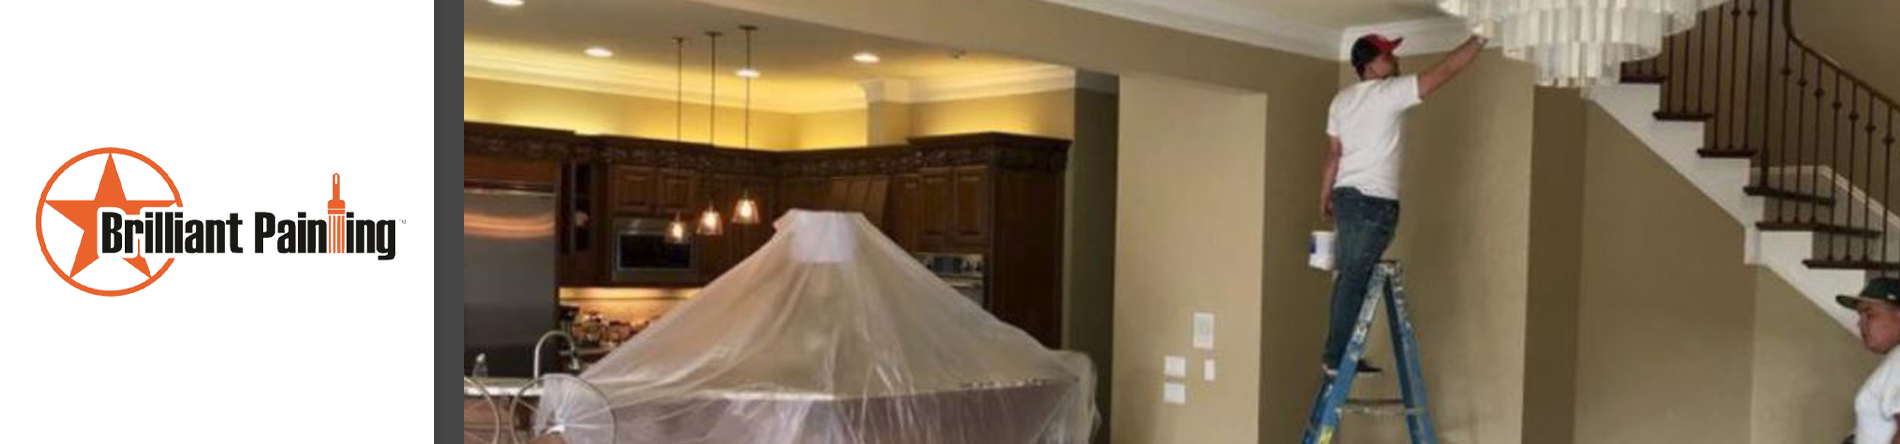 Brilliant Painting & Remodeling Services L.L.C. is a Painting Company in Austin, TX